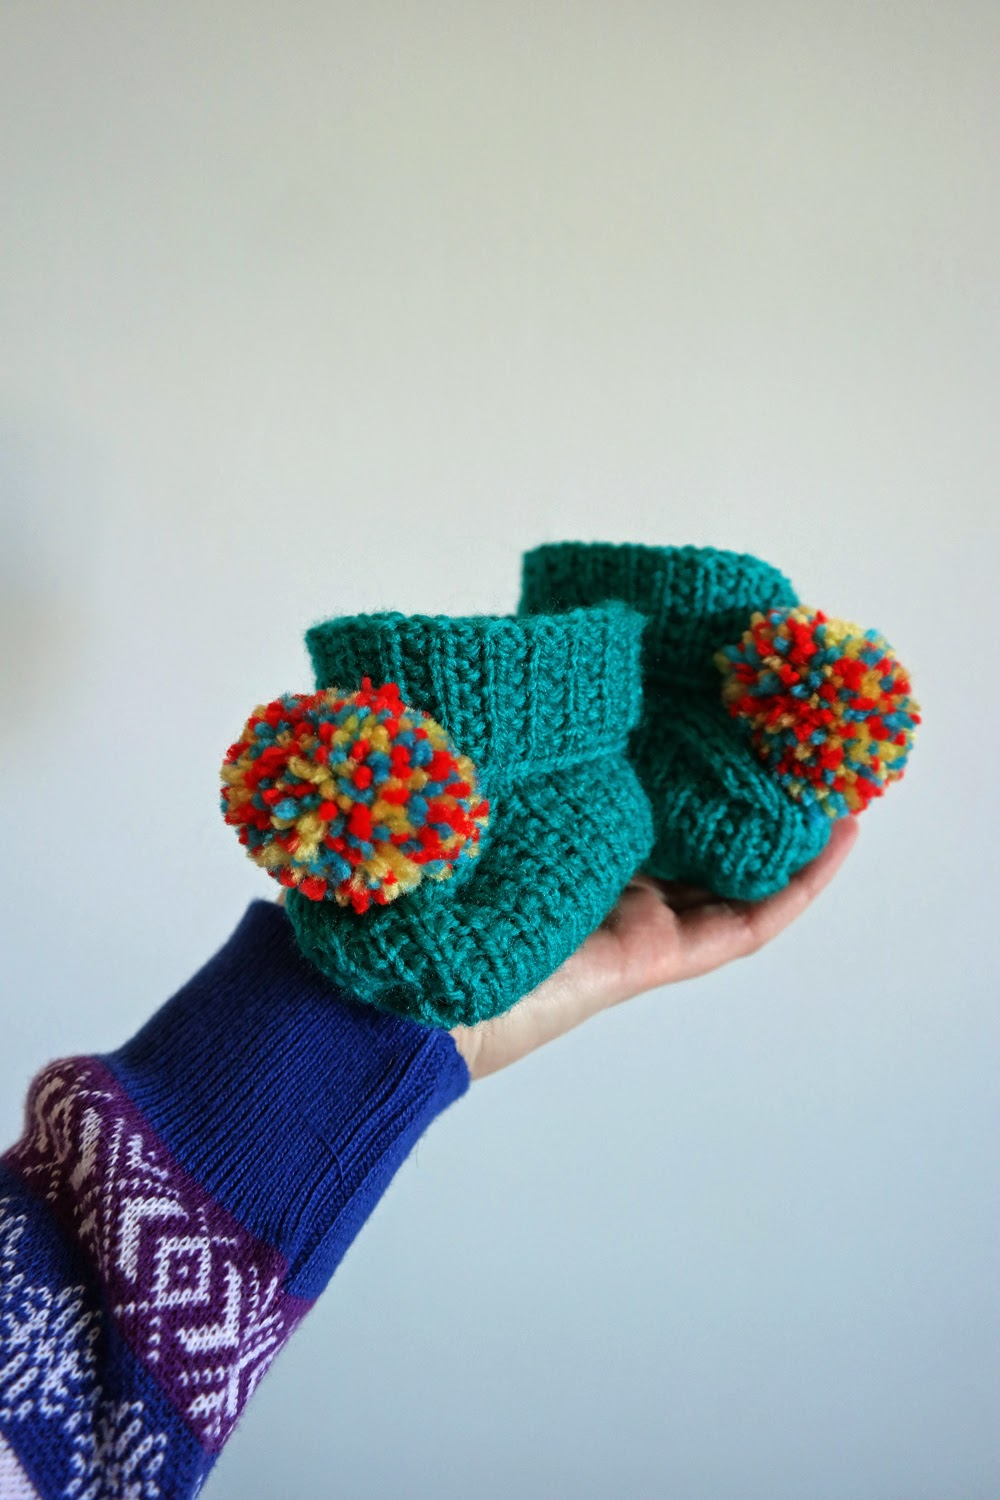 Baby booties with pom-poms on them